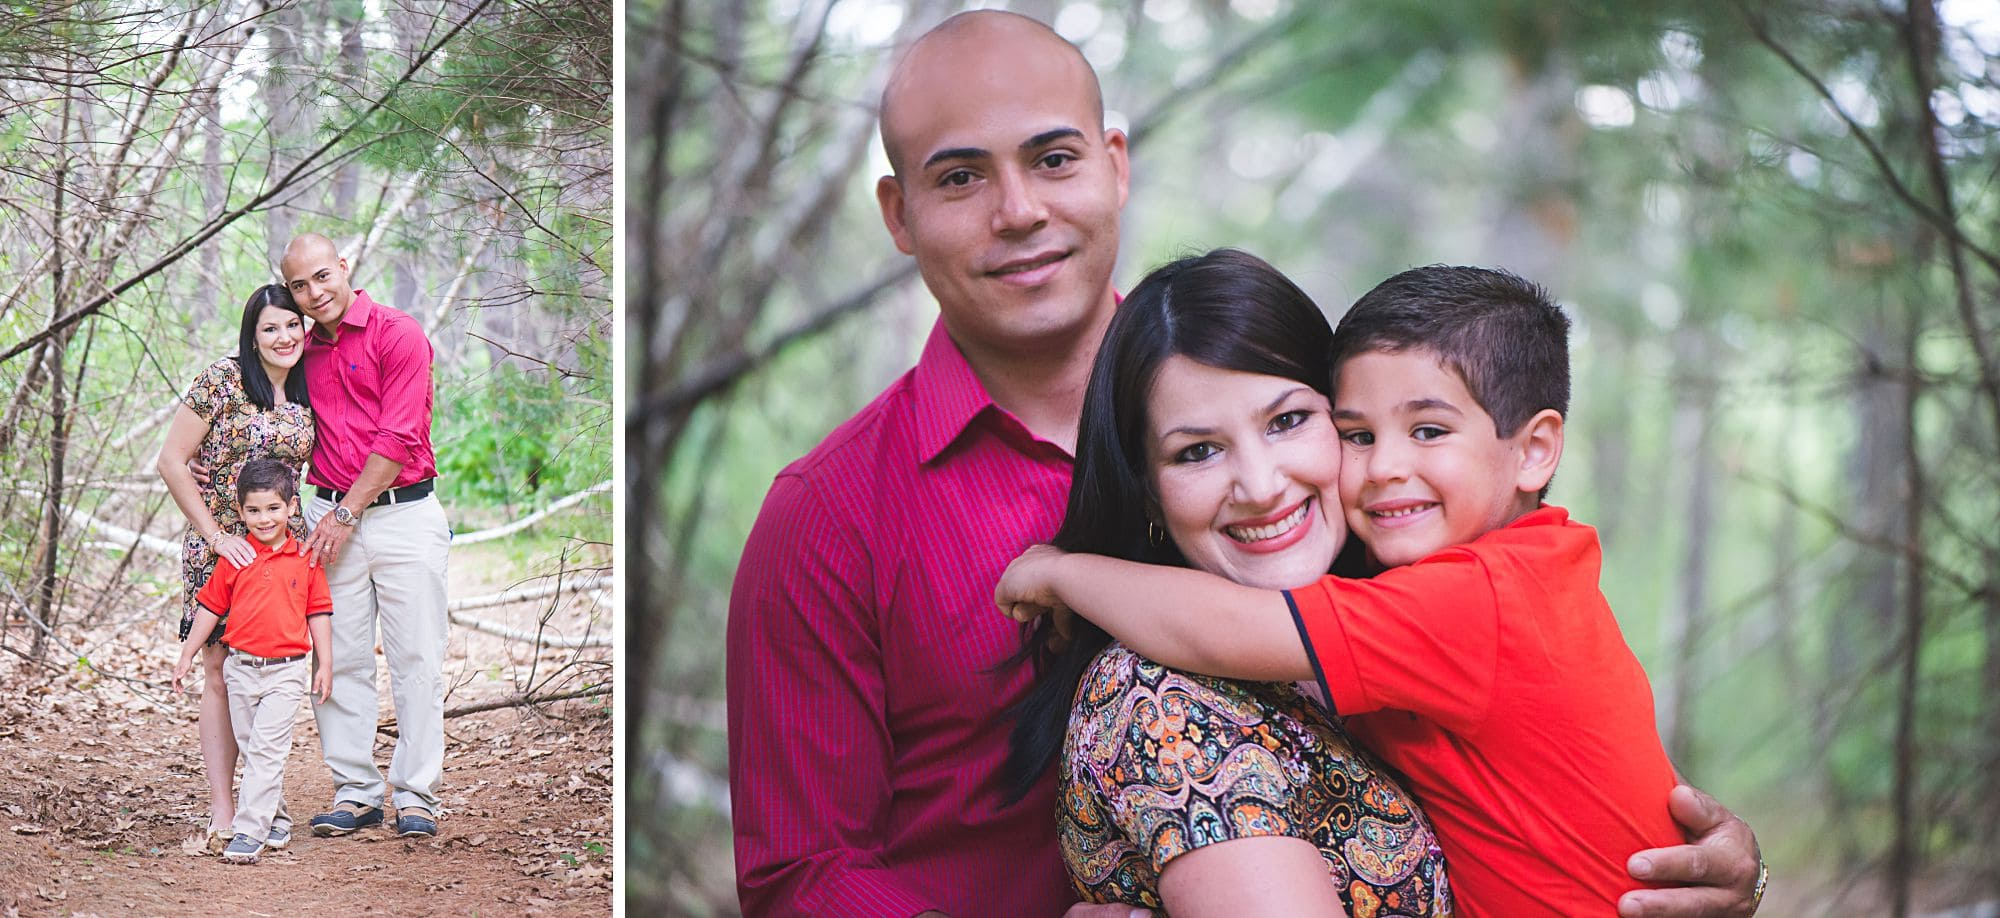 Family portrait outdoors wearing pink and orange in a natural forest setting